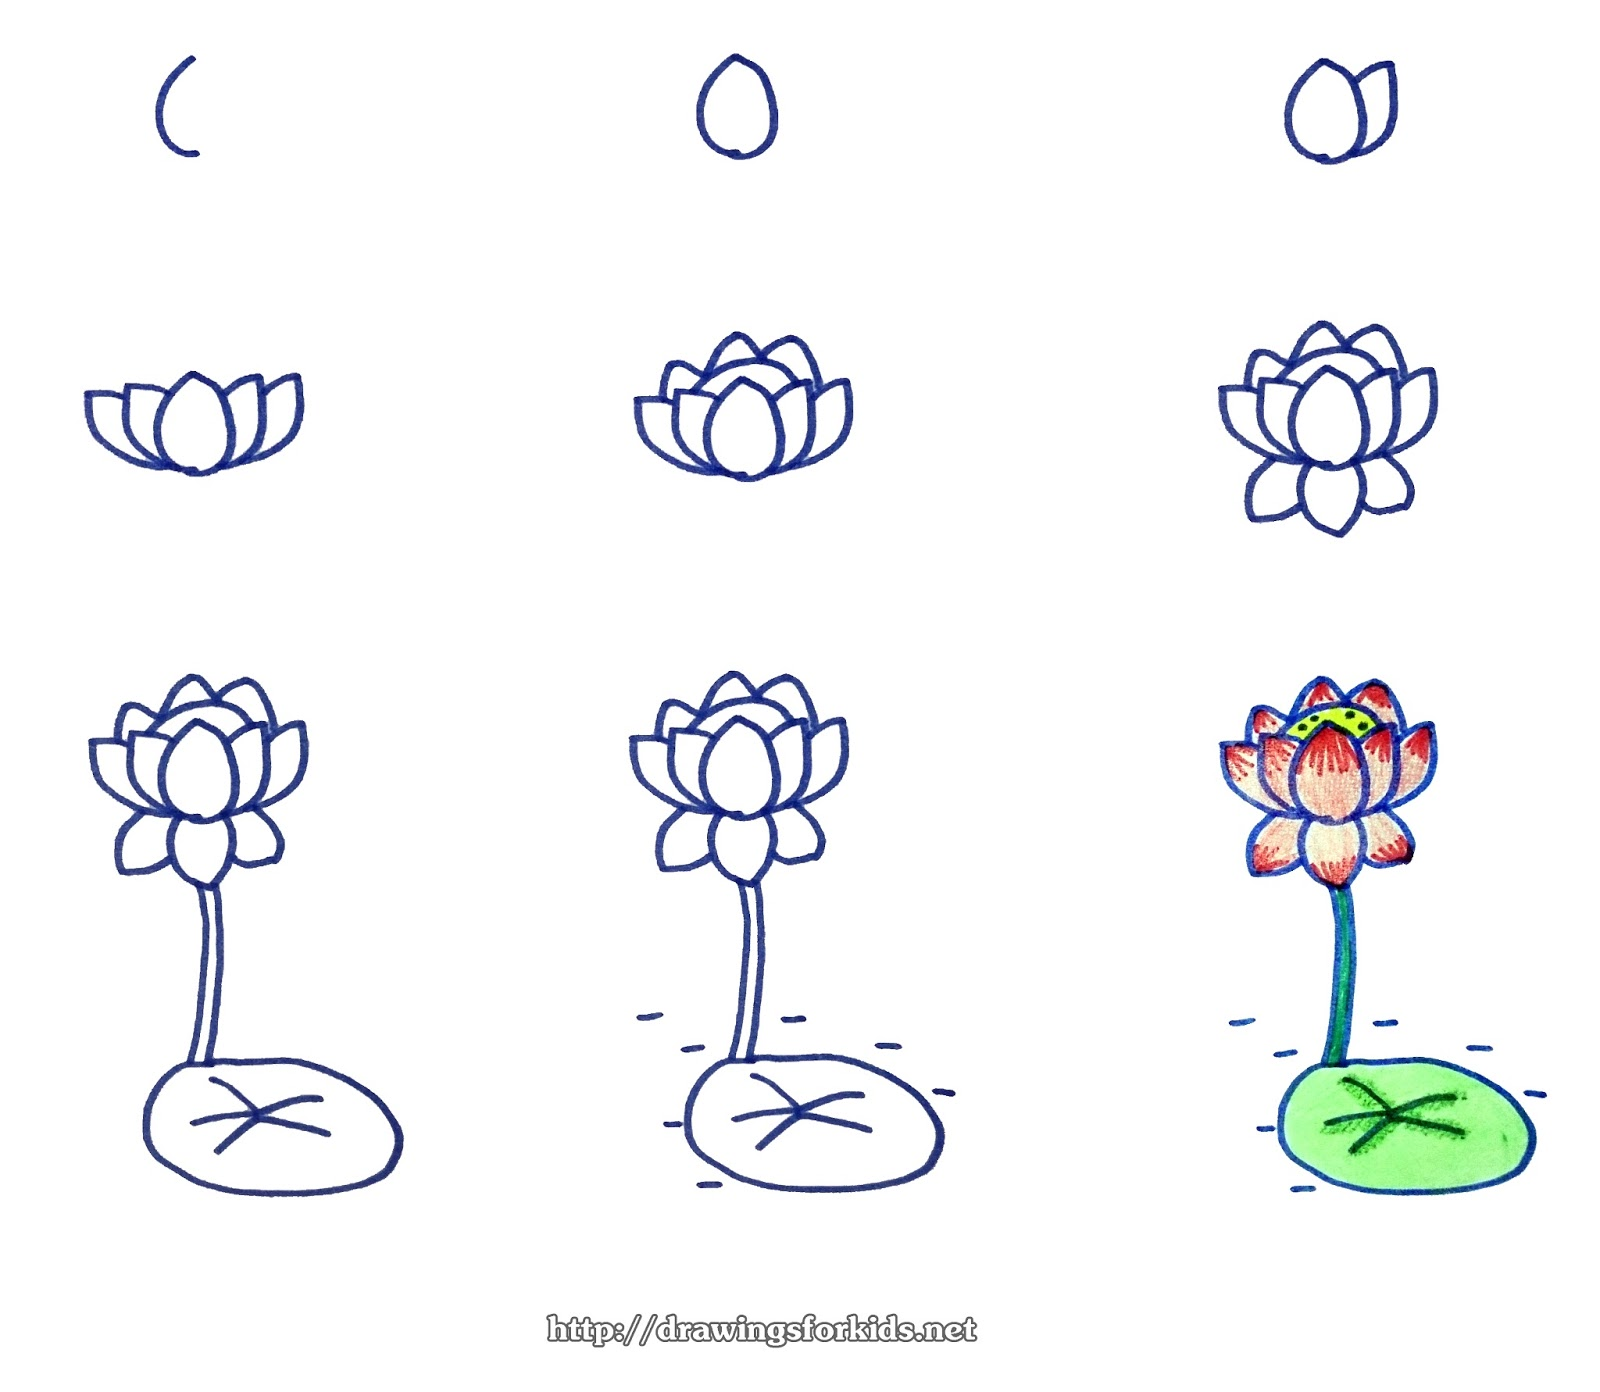 How to draw a lotus flower step by step drawingsforkids sample video video minh ha izmirmasajfo